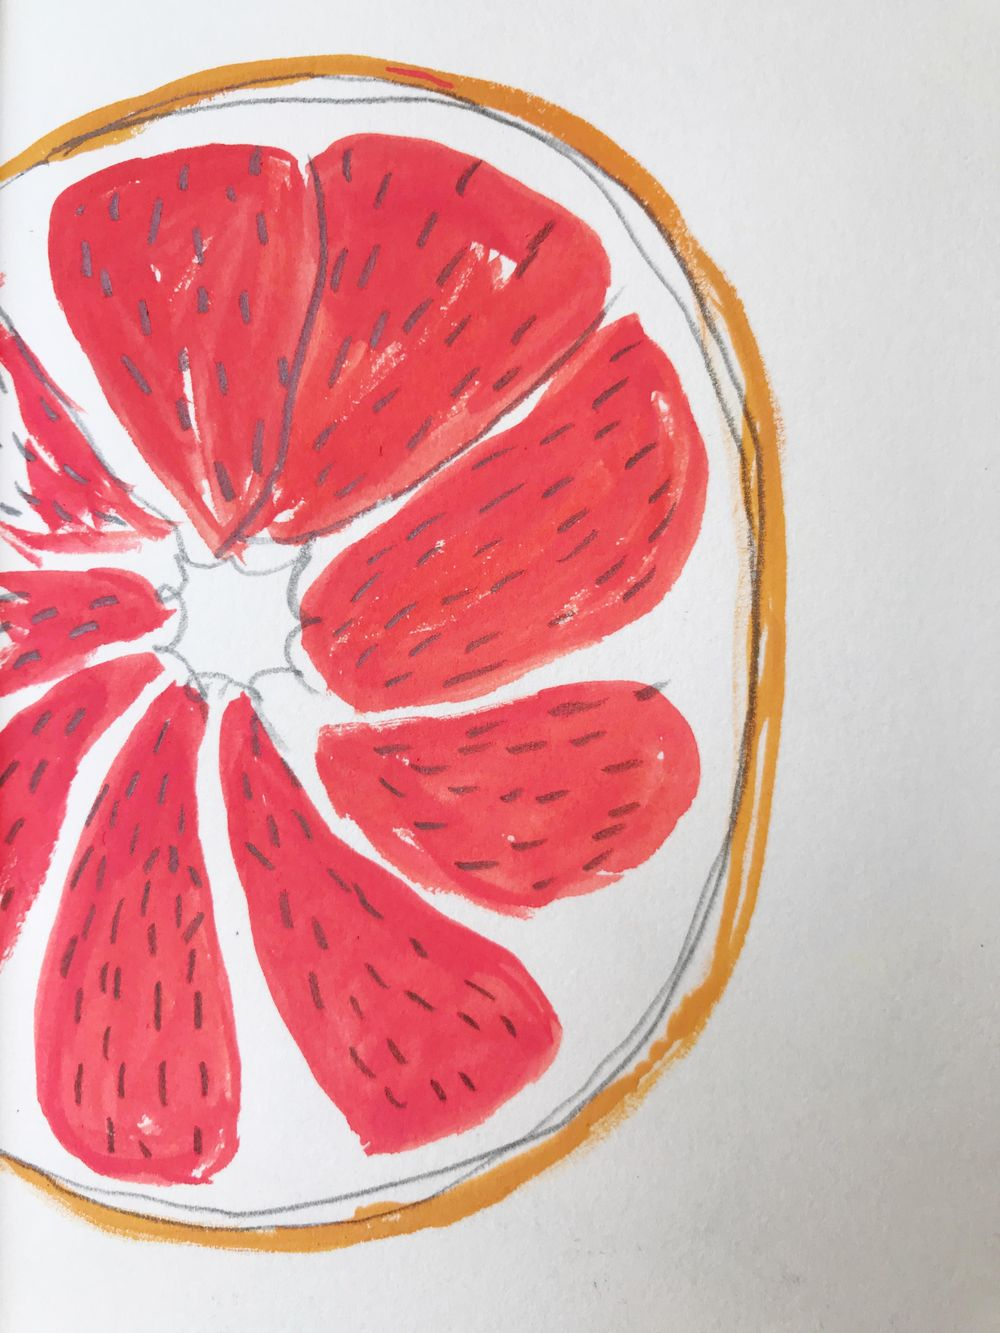 Painting Citrus - image 2 - student project